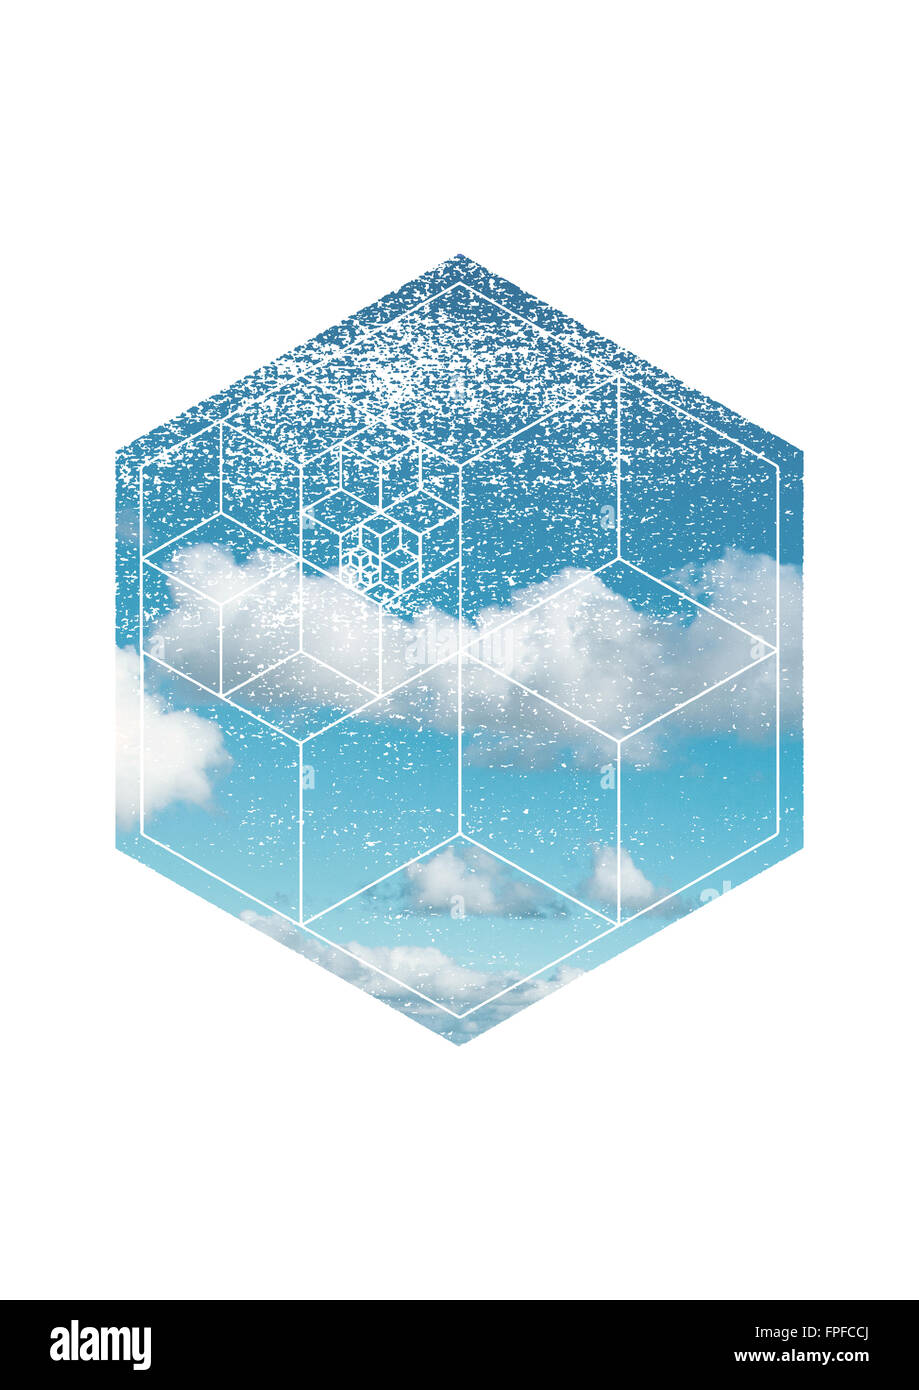 Scenic Skyscape - Blue Sky with White Fluffy Clouds on Bright Day with Hexagon Overlay and Intersecting Geometric - Stock Image